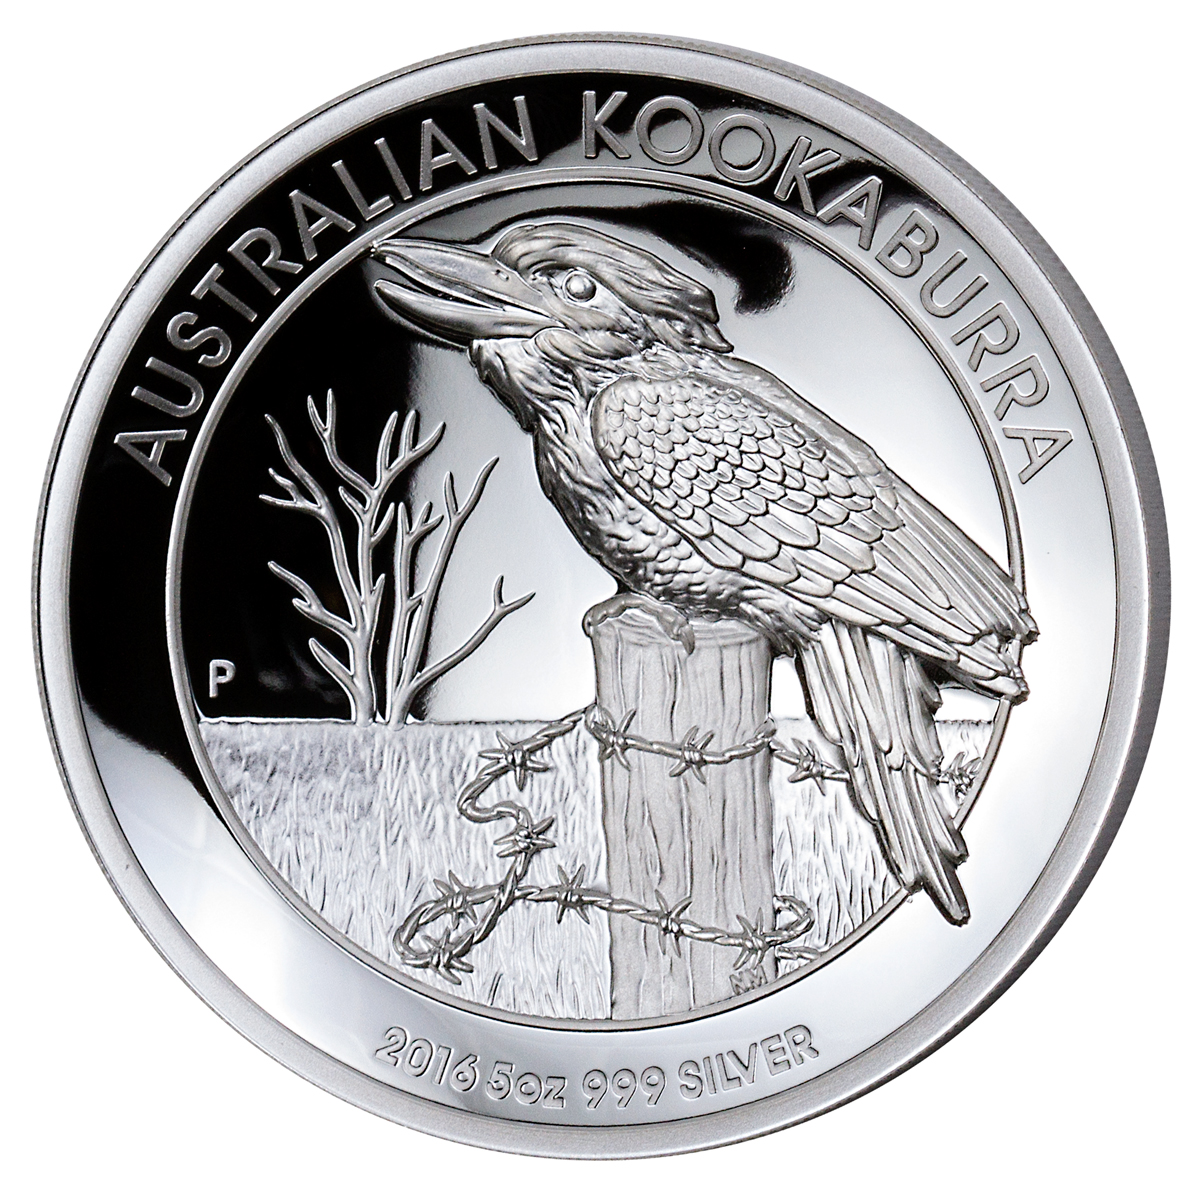 2016-P Australia 5 oz High Relief Silver Kookaburra Proof $8 GEM Proof OGP